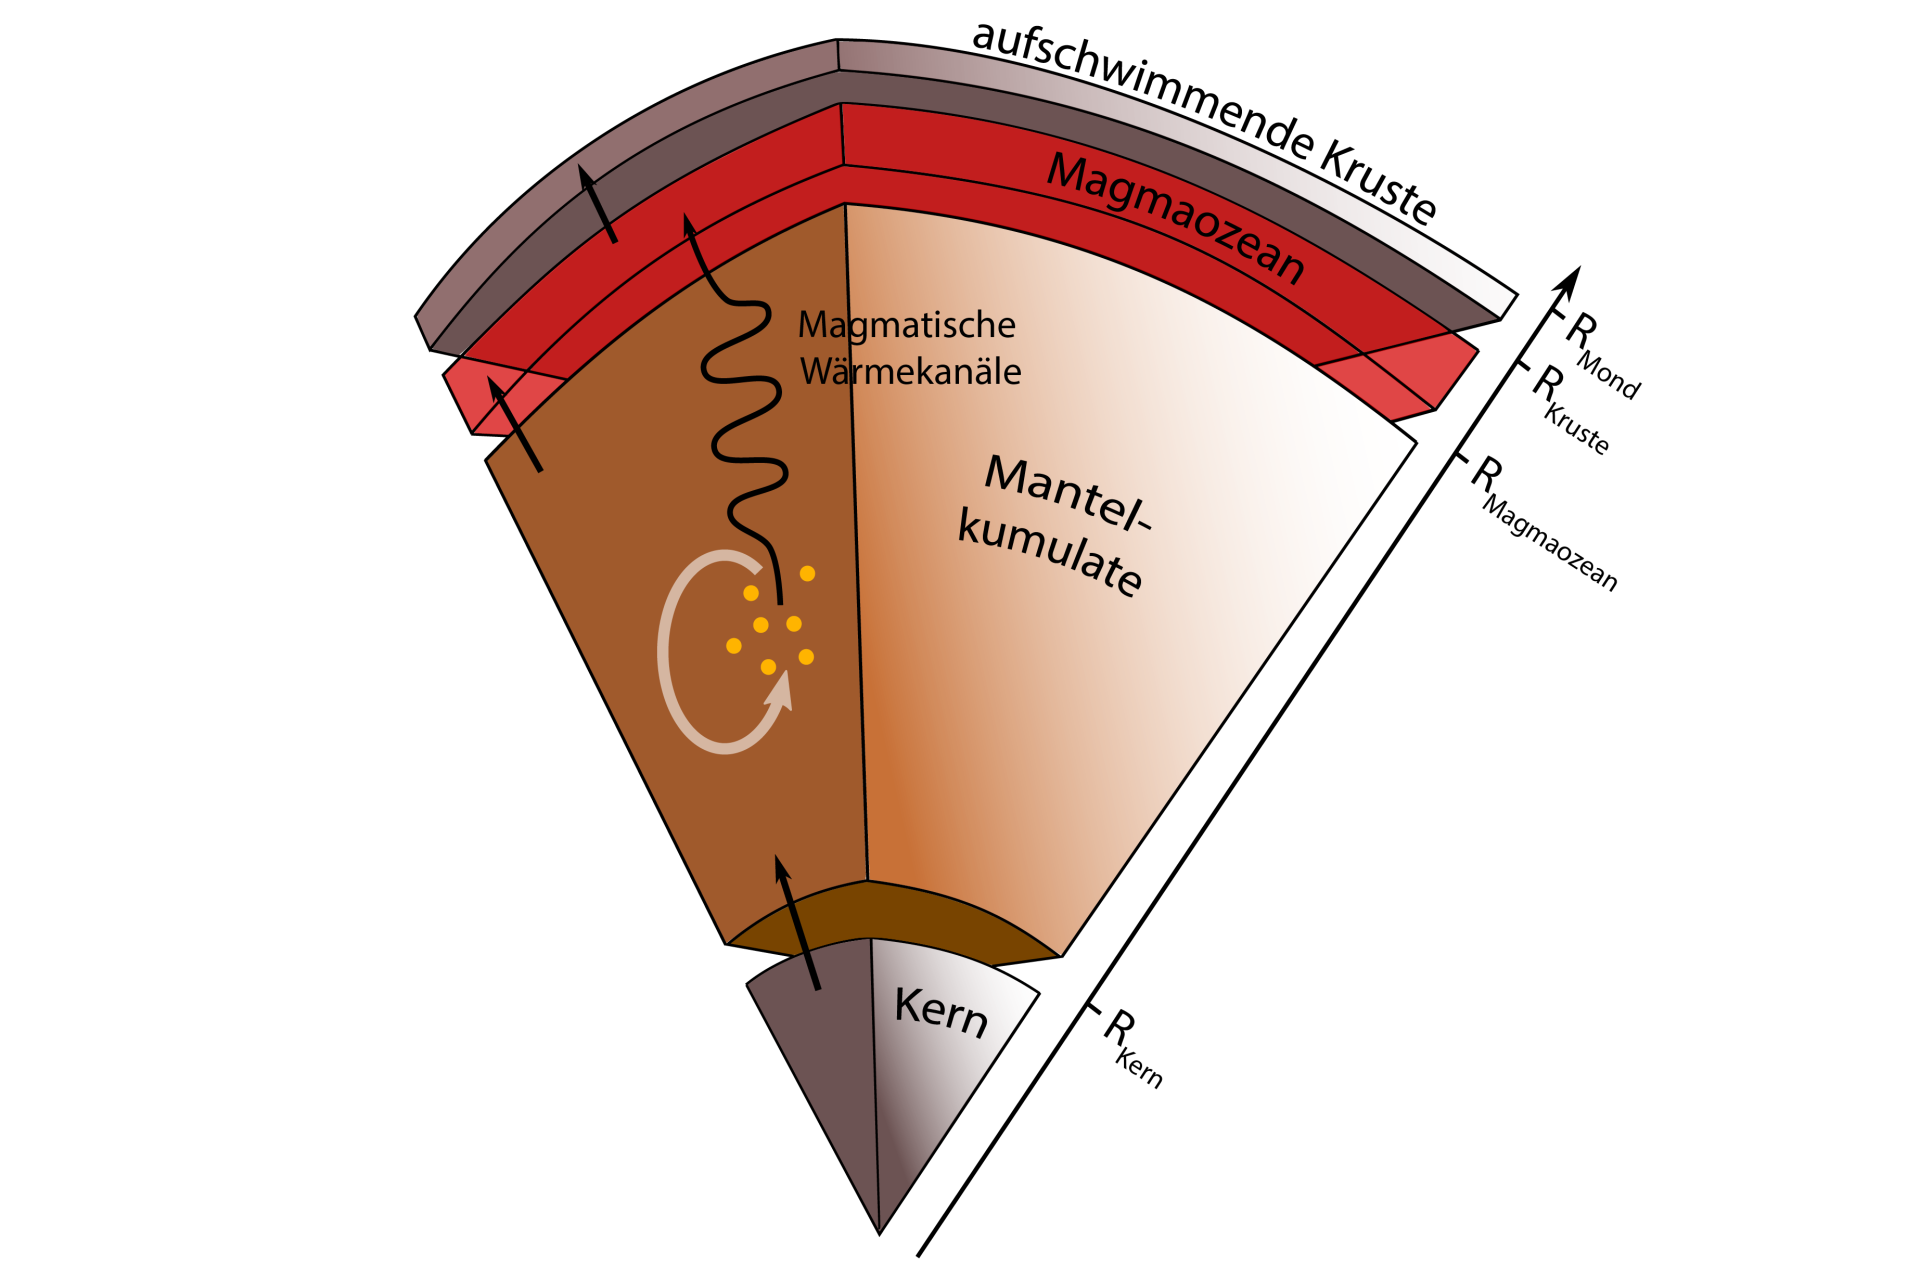 Schematic structure of the early Moon's interior